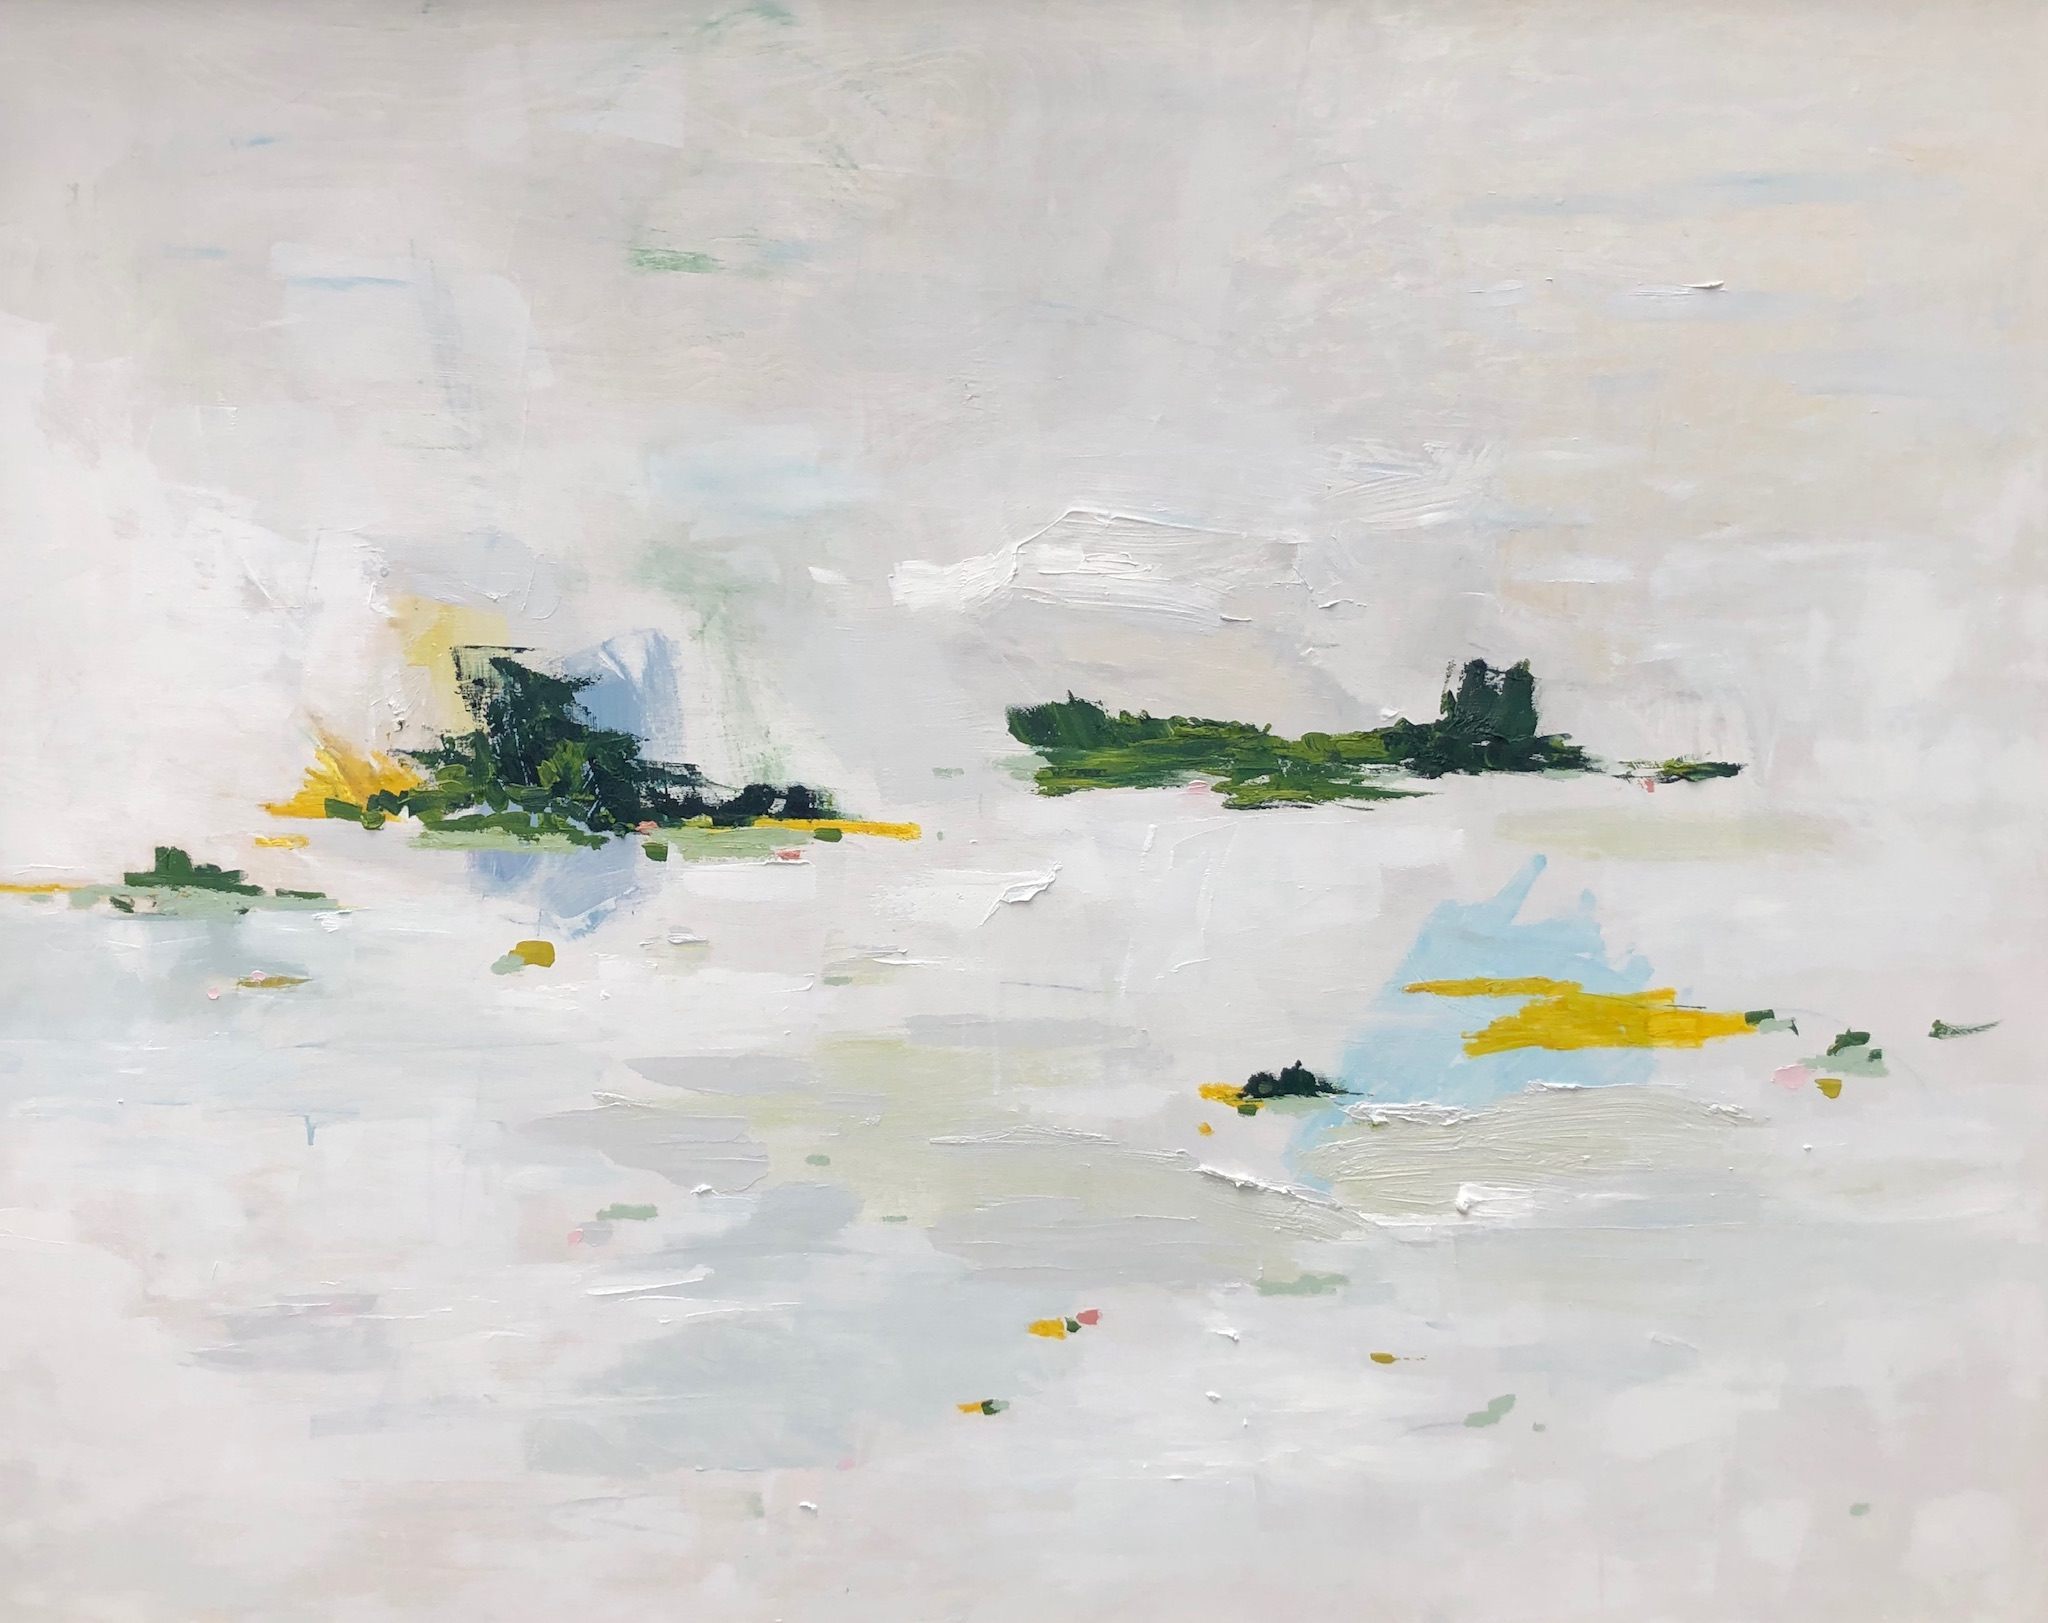 Archipelago Study, oil and acrylic on panel, 60